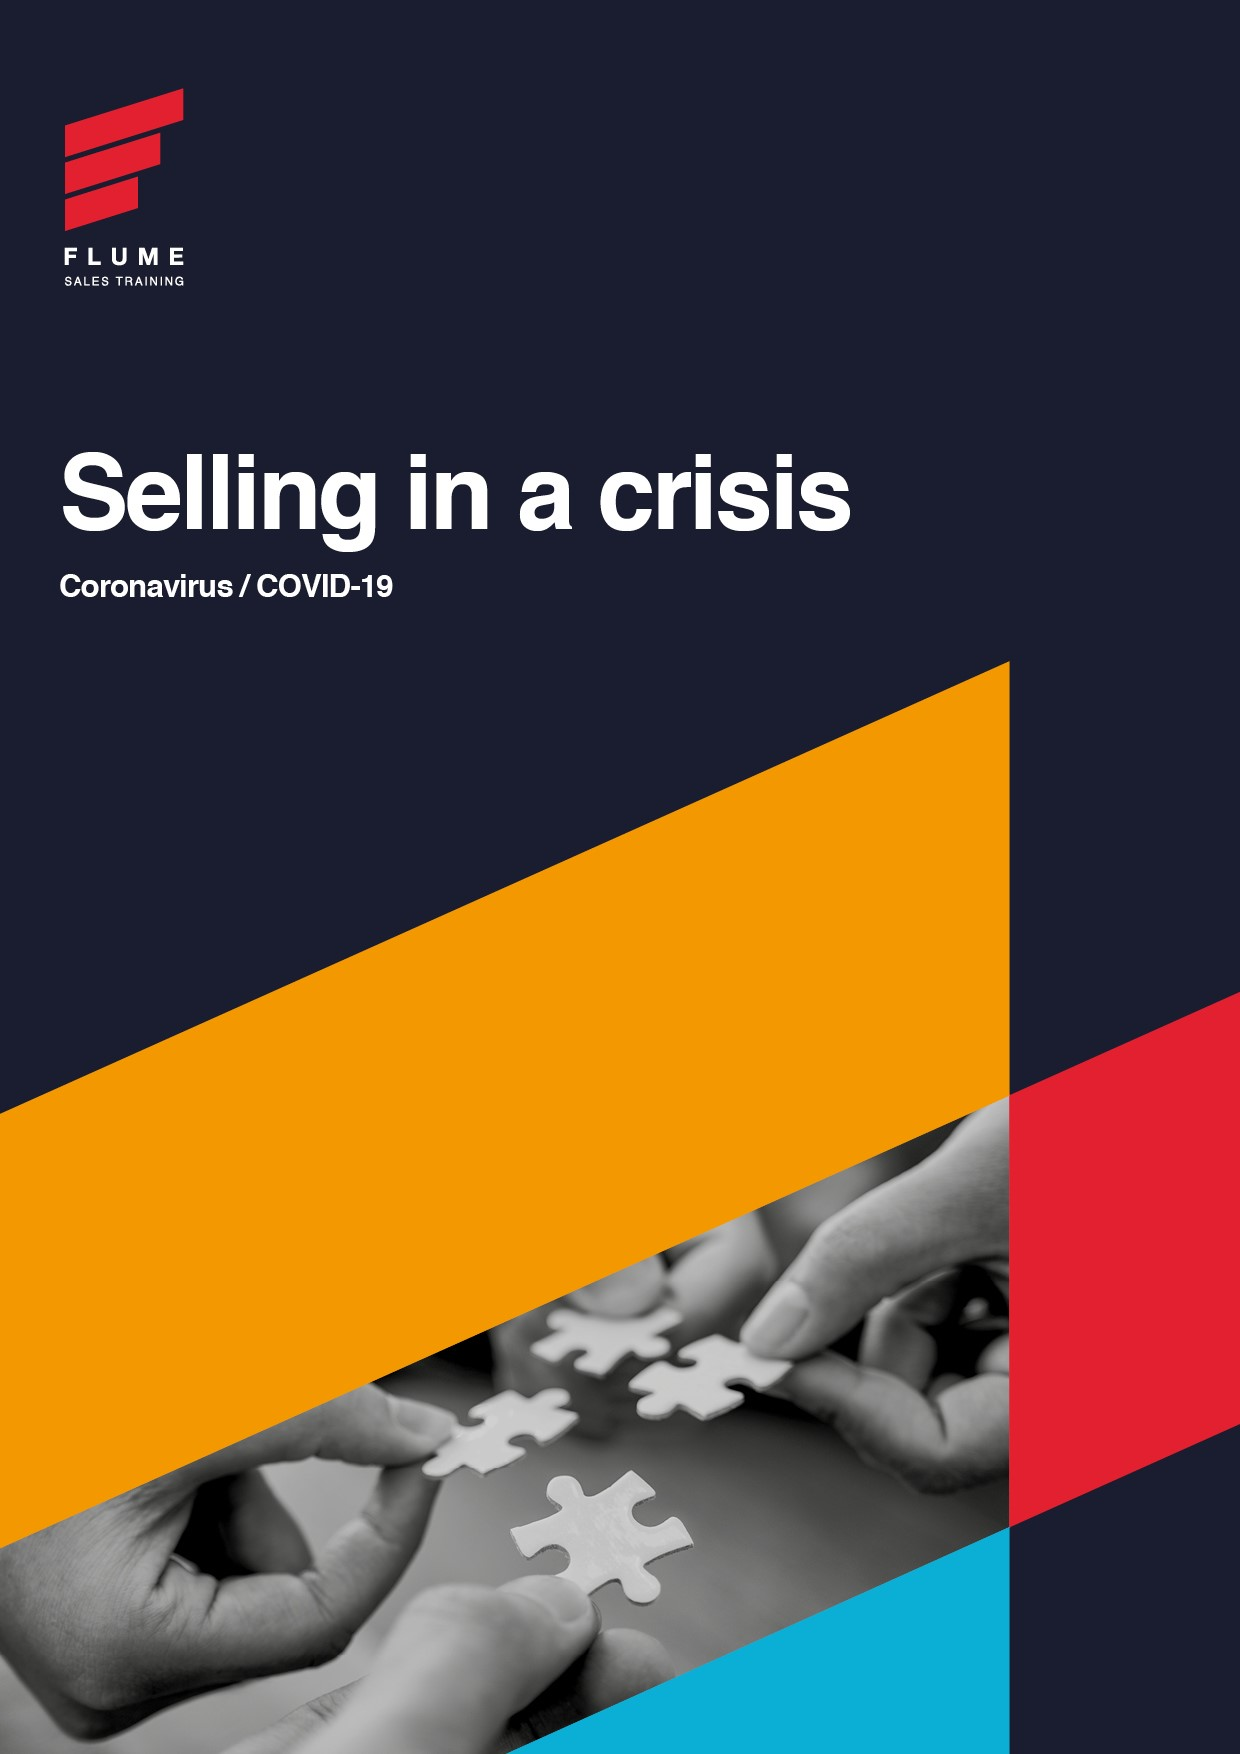 Selling in a crisis